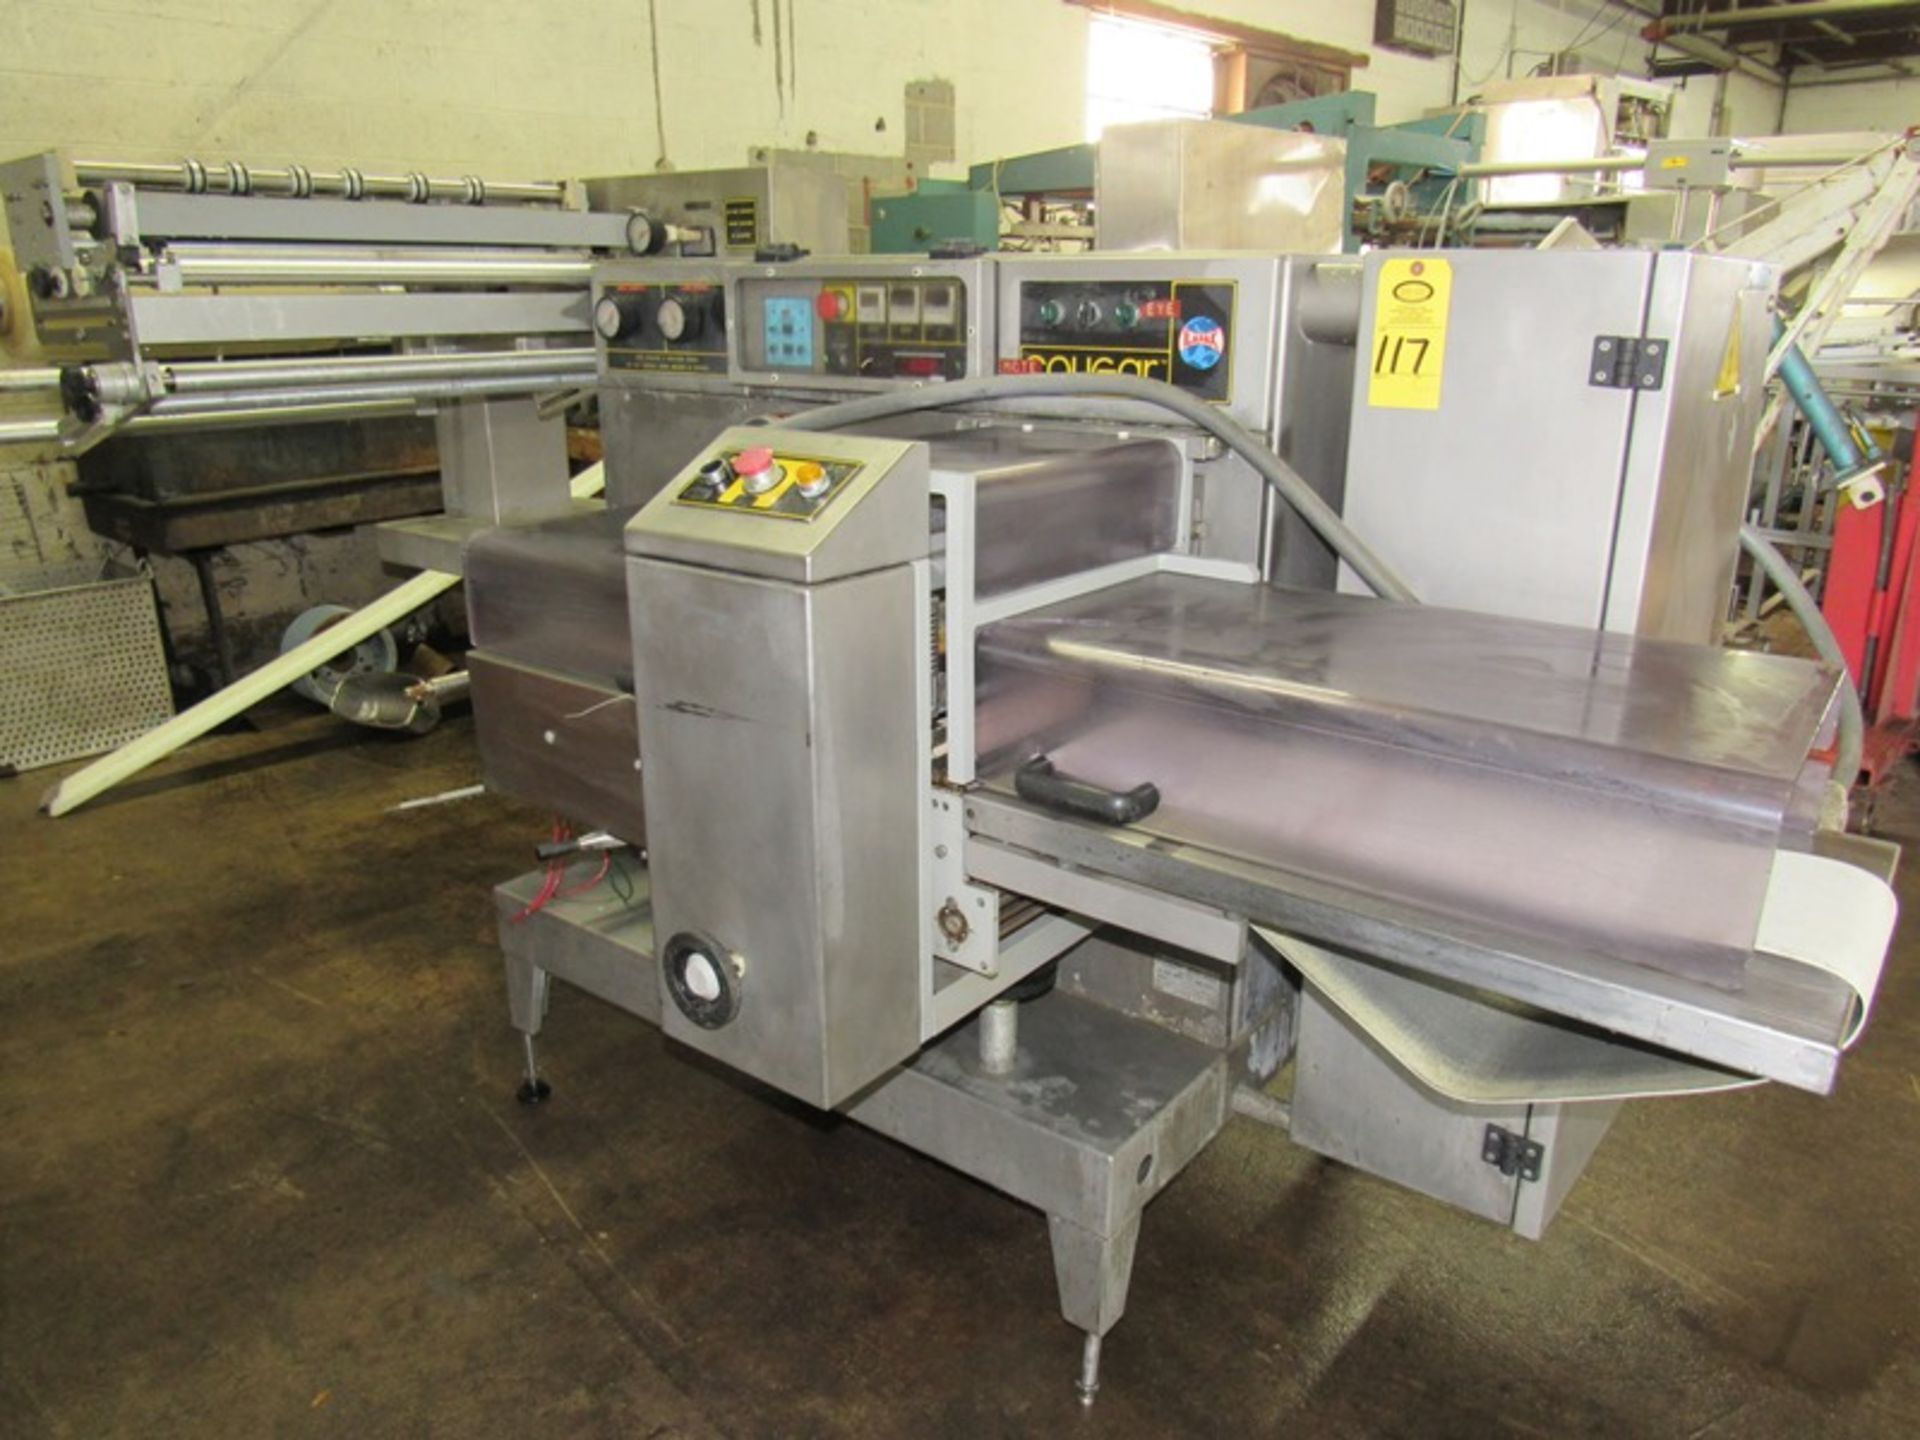 Lot 117 - Ilapak Cougar Model Uno Flow Wrapper Ser. #105, 230 Volts, 3 phase. Everything Must Be Paid by 6/7